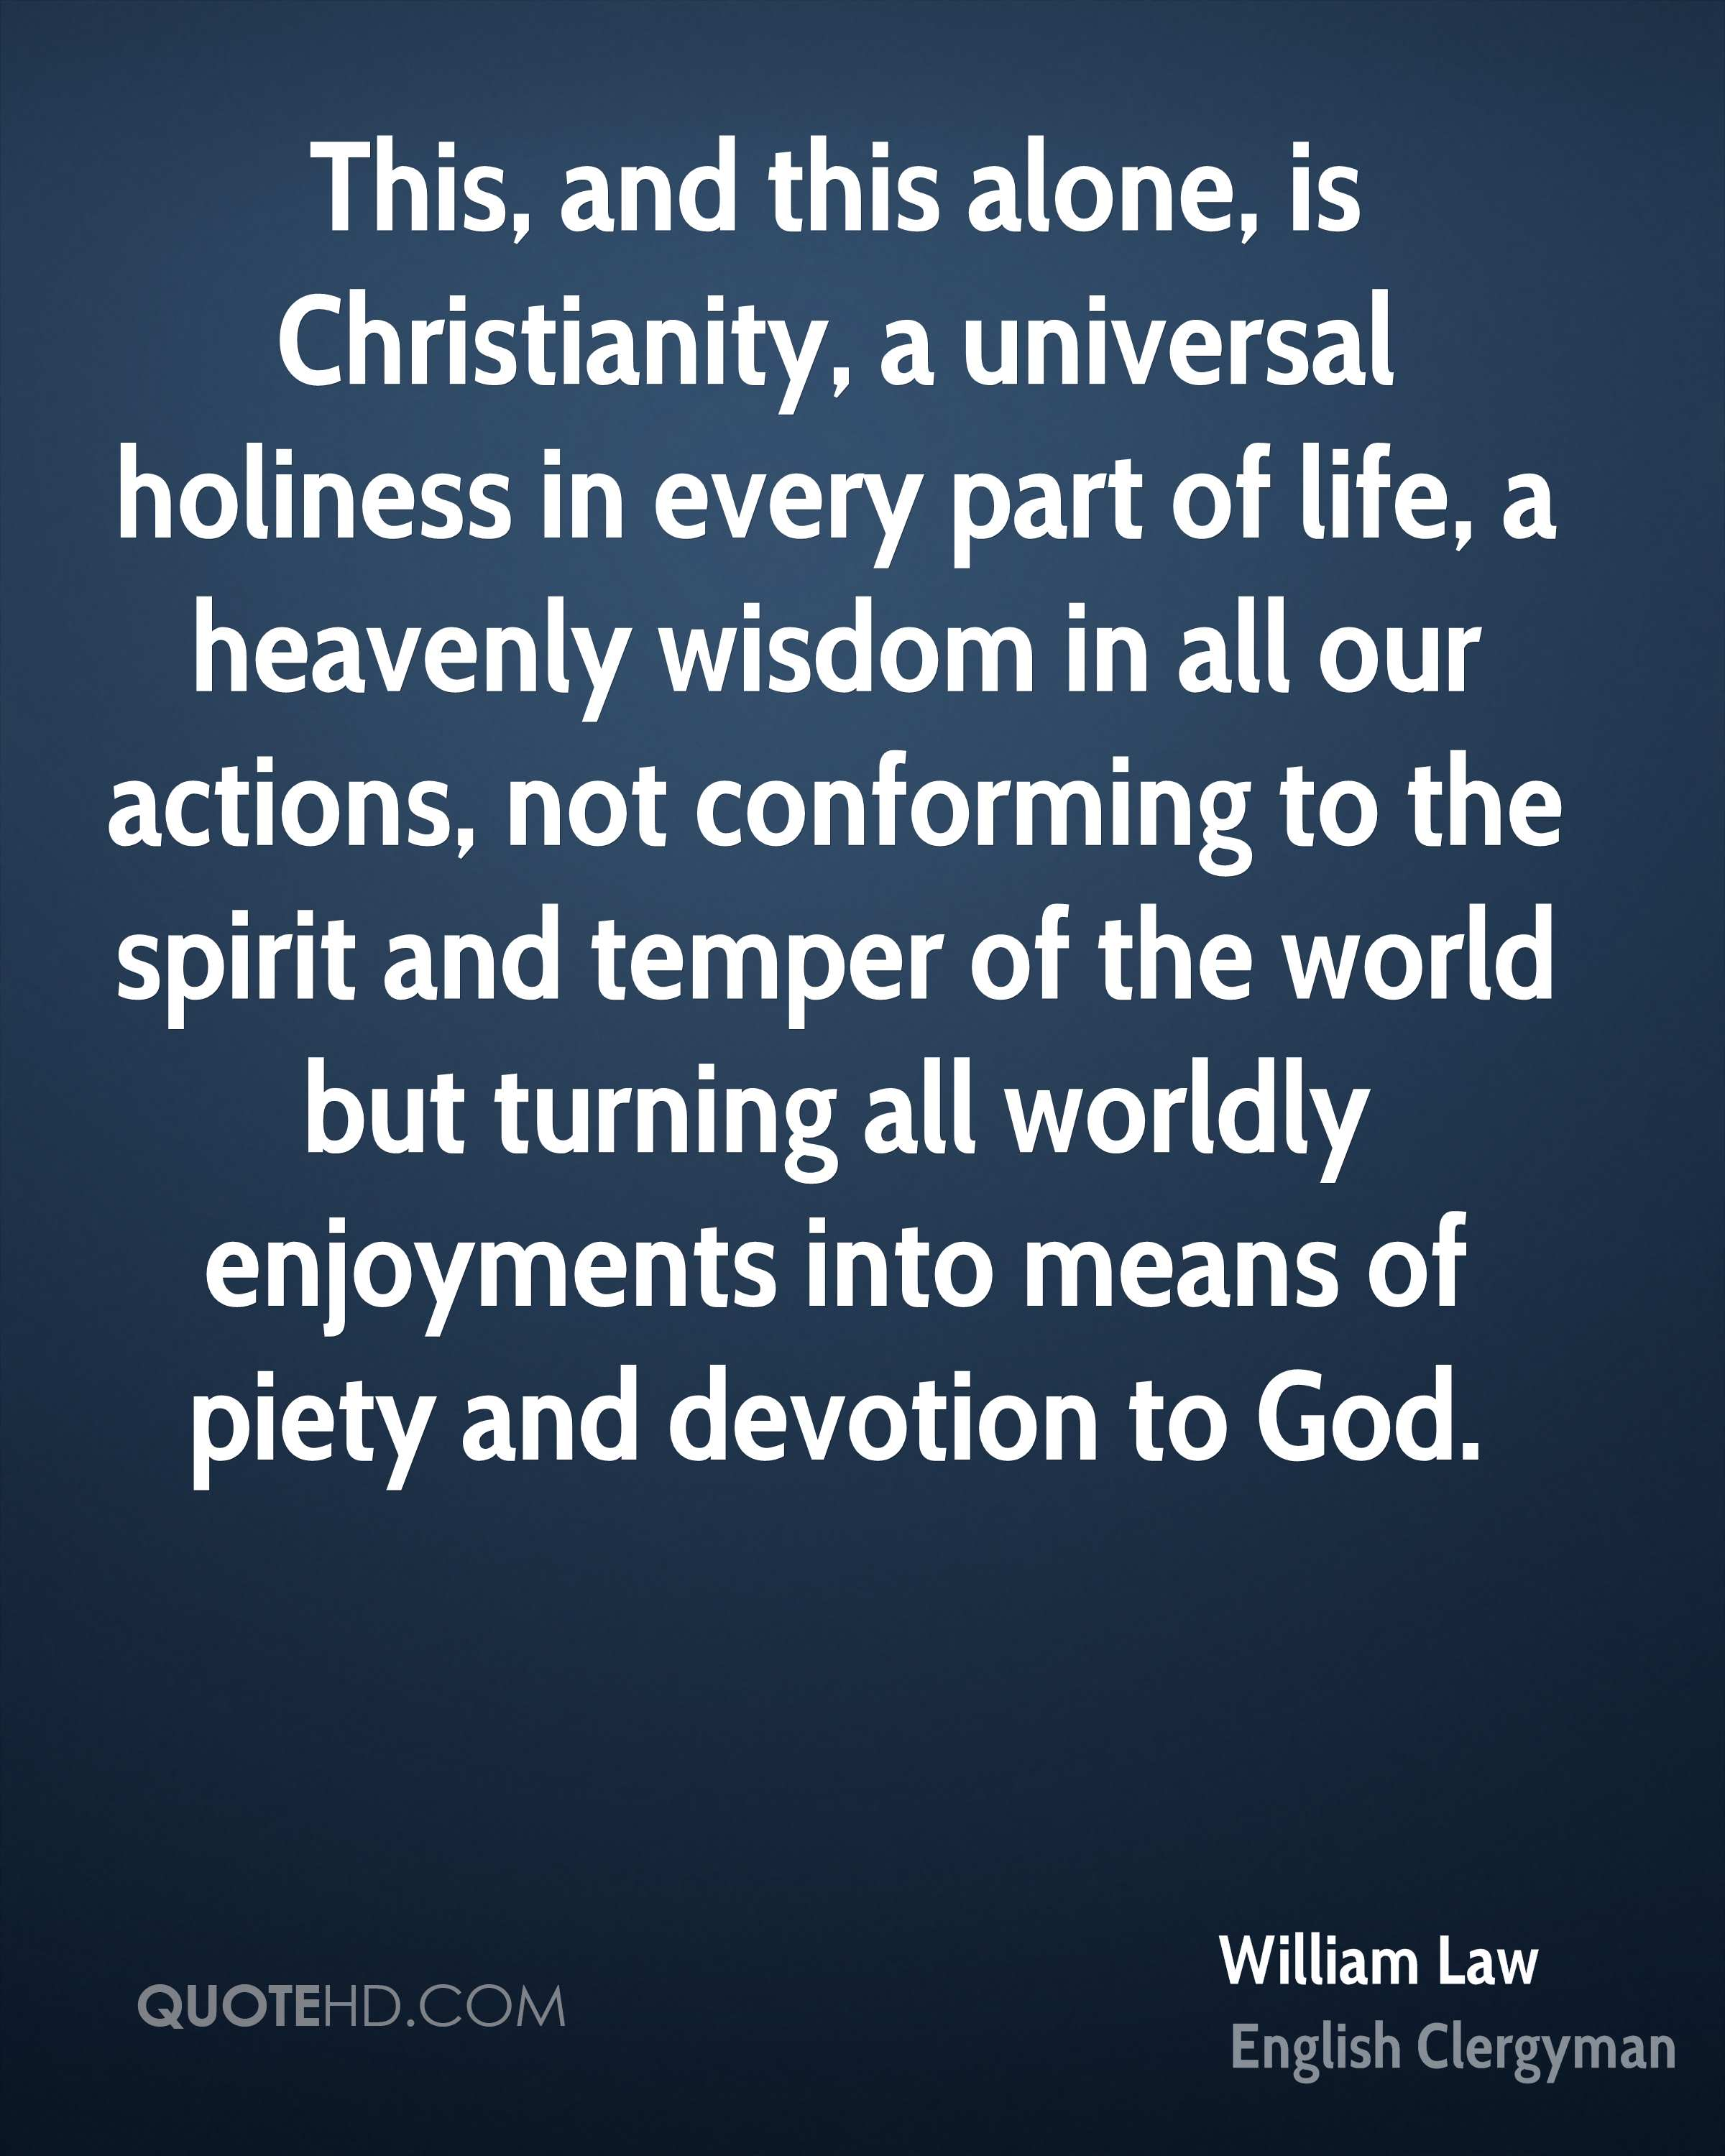 This, and this alone, is Christianity, a universal holiness in every part of life, a heavenly wisdom in all our actions, not conforming to the spirit and temper of the world but turning all worldly enjoyments into means of piety and devotion to God.